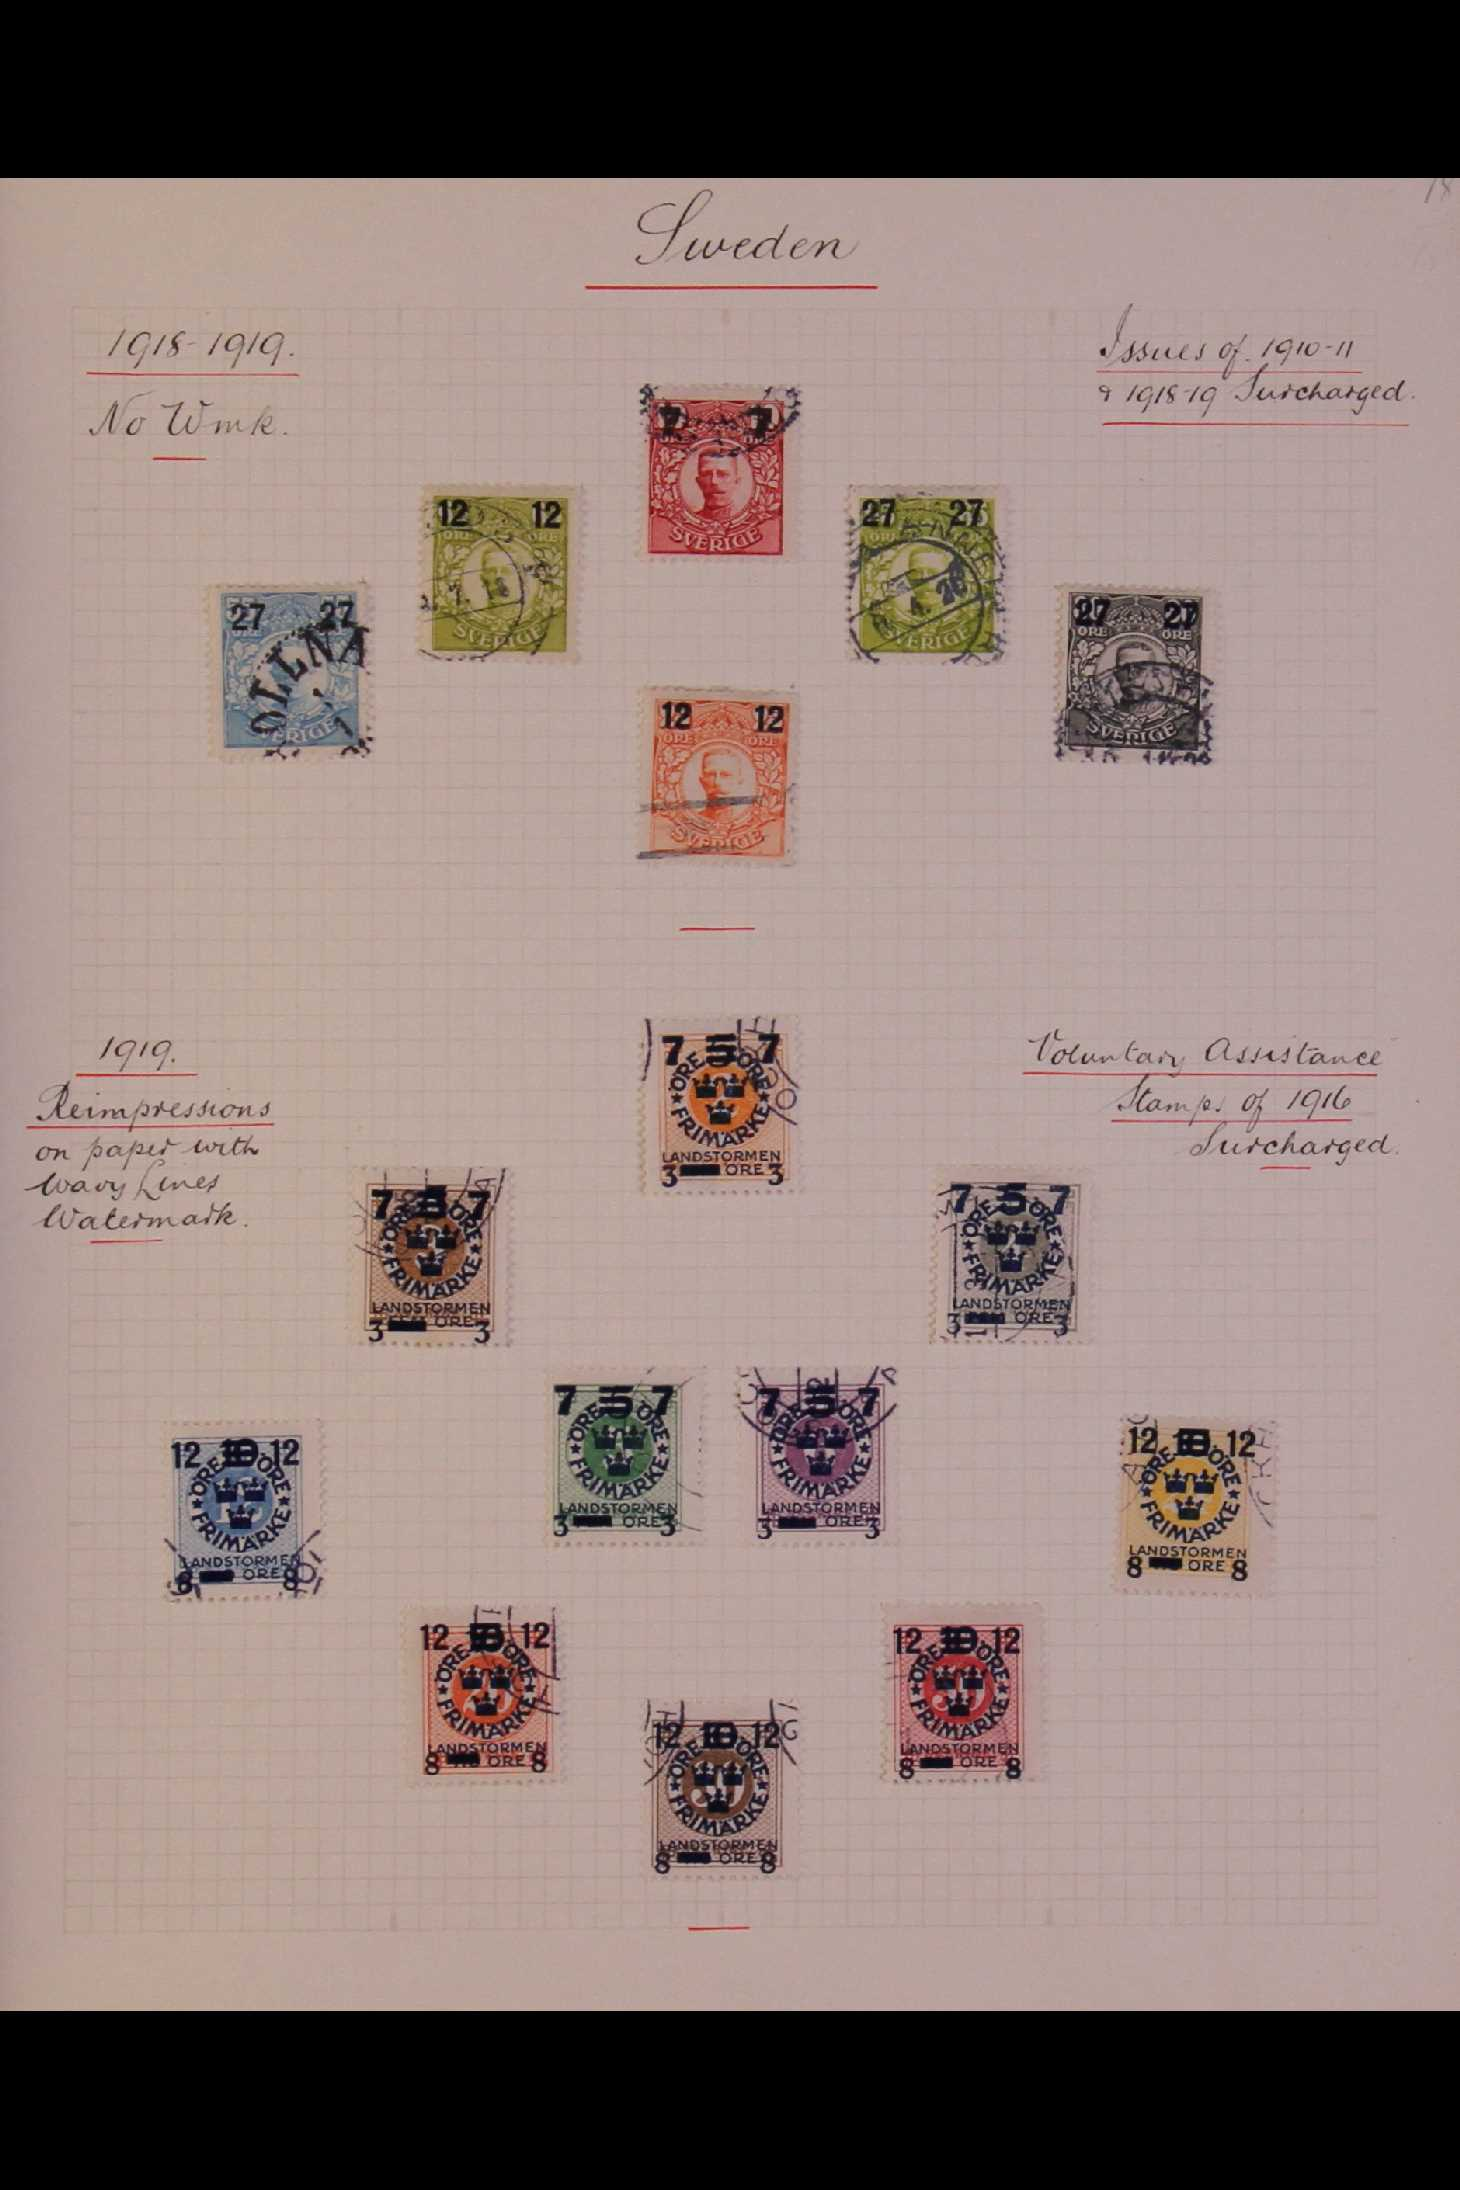 SWEDEN 1903-1966 USED COLLECTION incl. 1903 5k GPO, 1910-19 wmk Crown set, 1916 Landstorm surcharges - Image 3 of 12